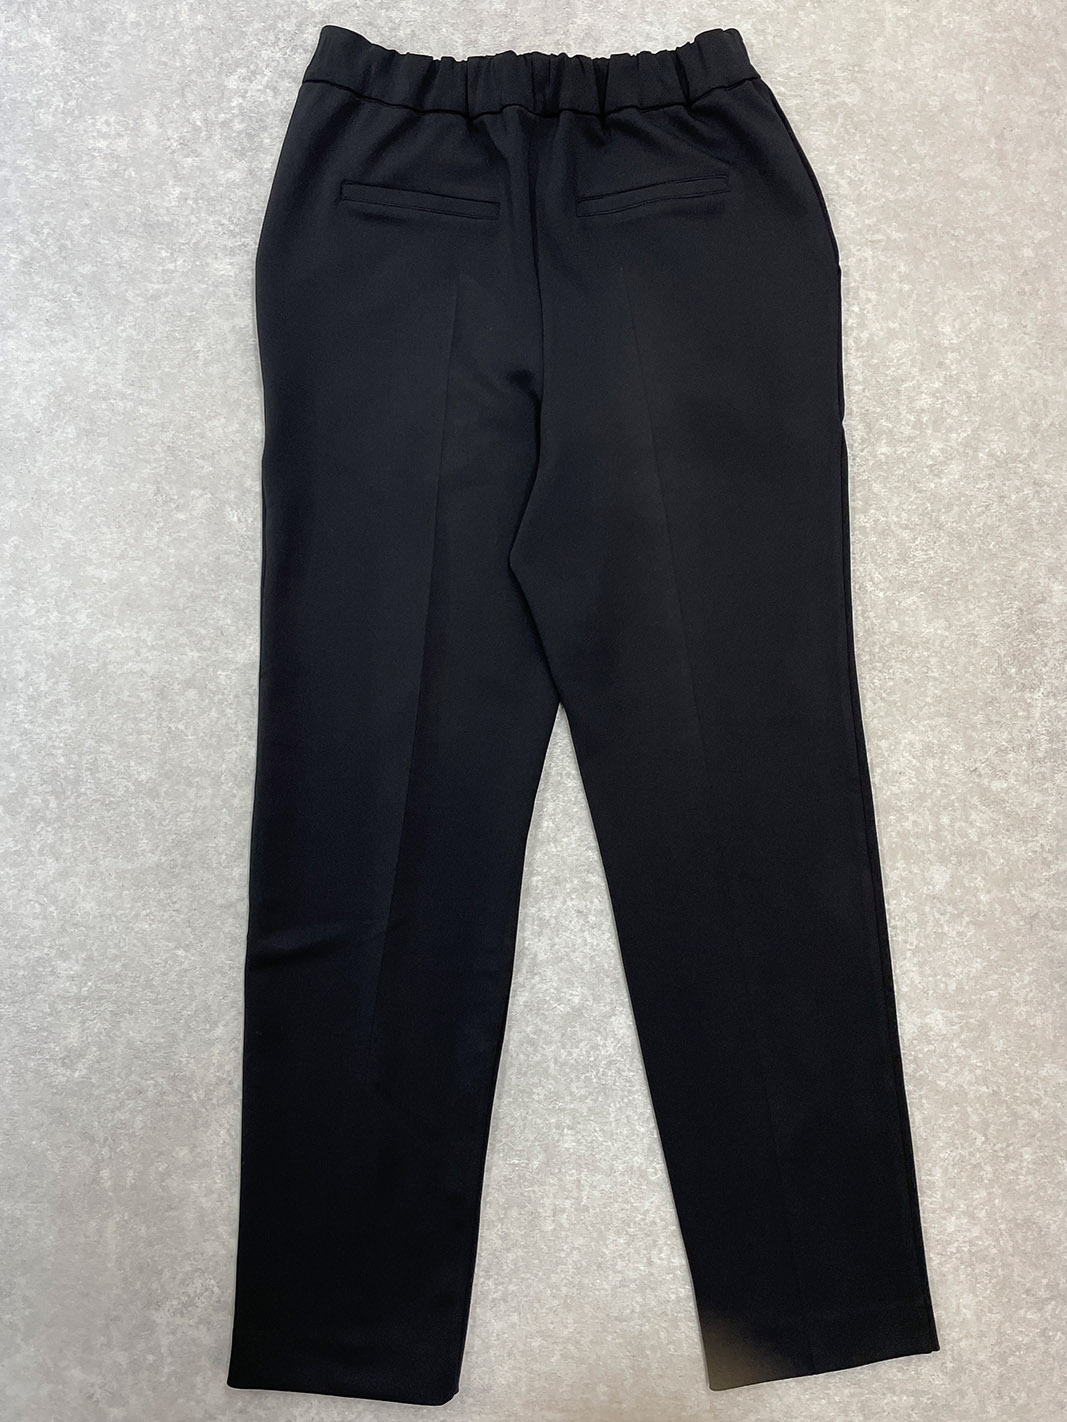 【SOLD OUT】スリットAdjustable Pants ブラック